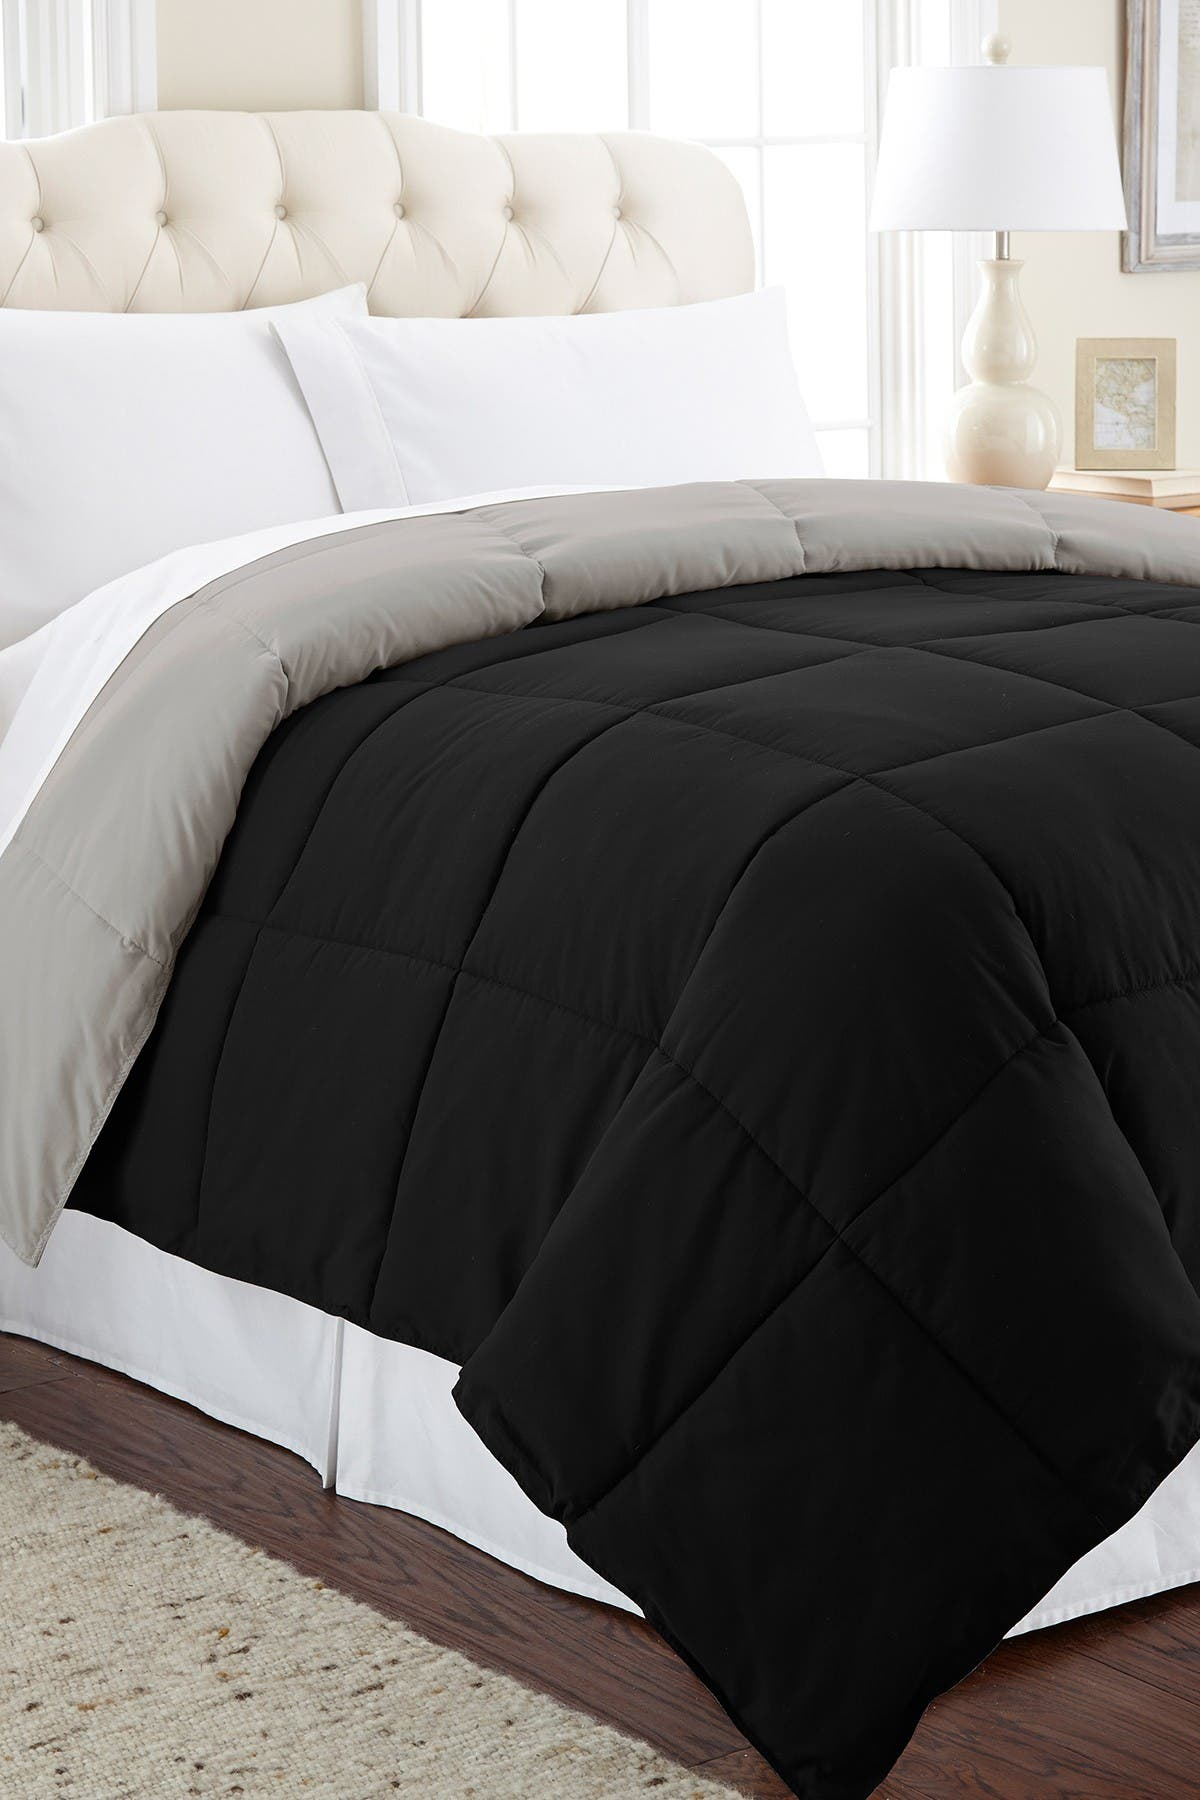 Image of Modern Threads Down Alternative Reversible King Comforter - Anthracite/Silver